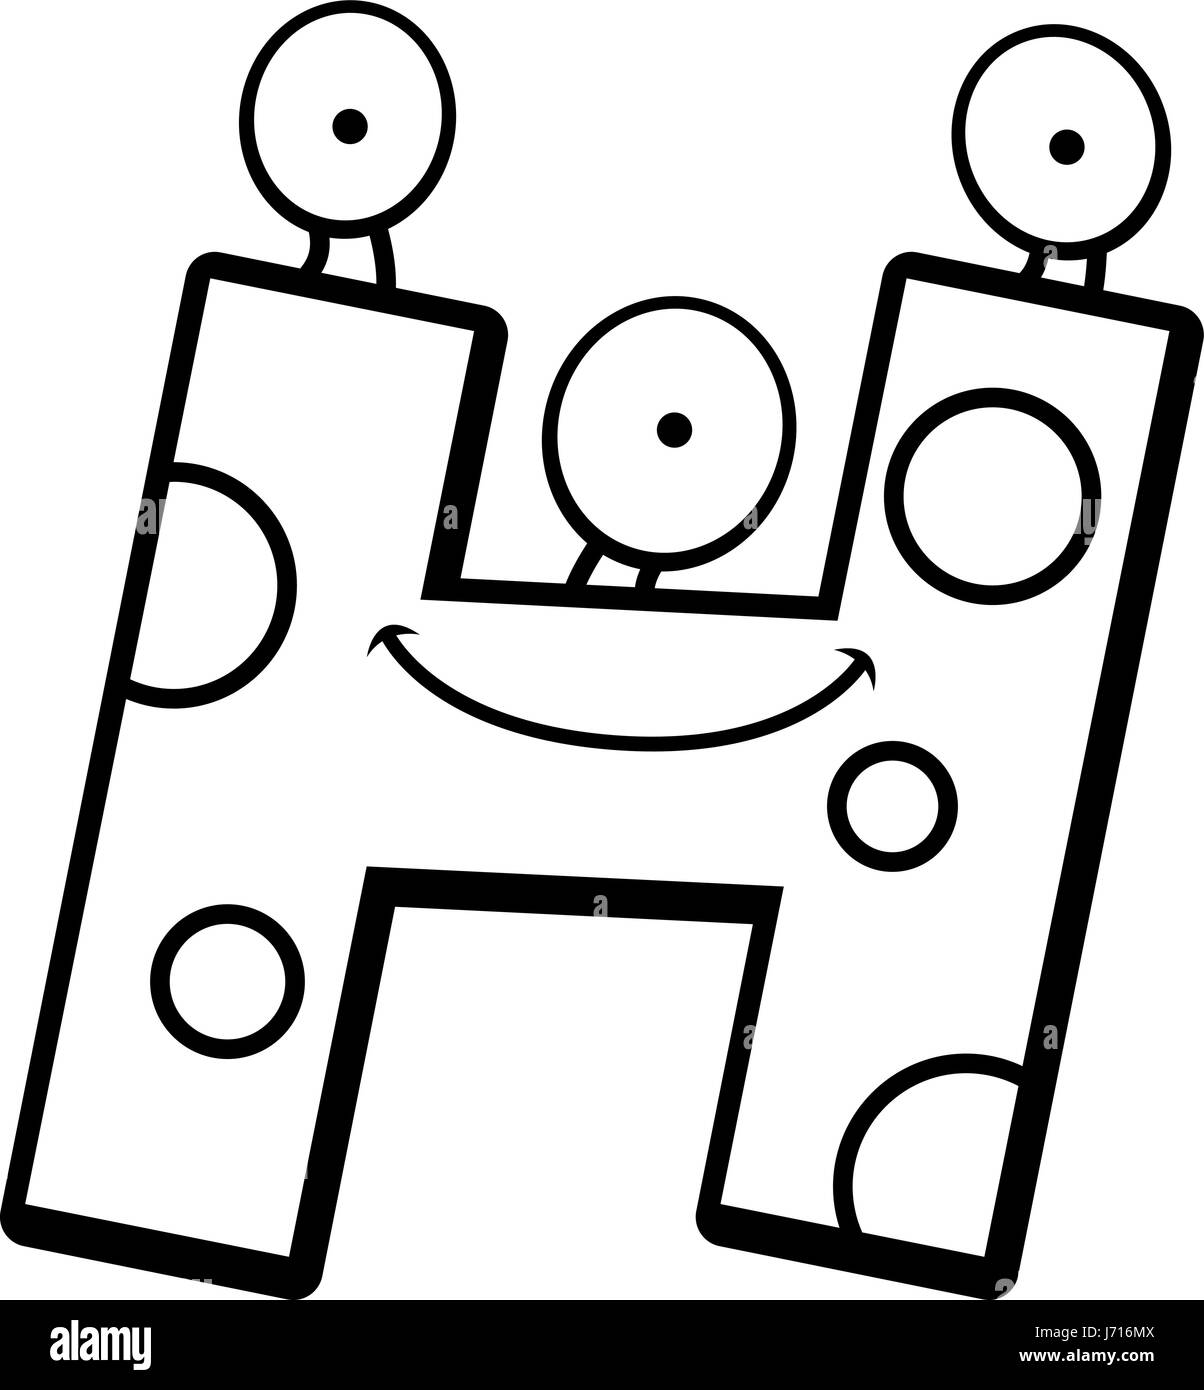 A Cartoon Illustration Of A Letter H Monster Smiling And